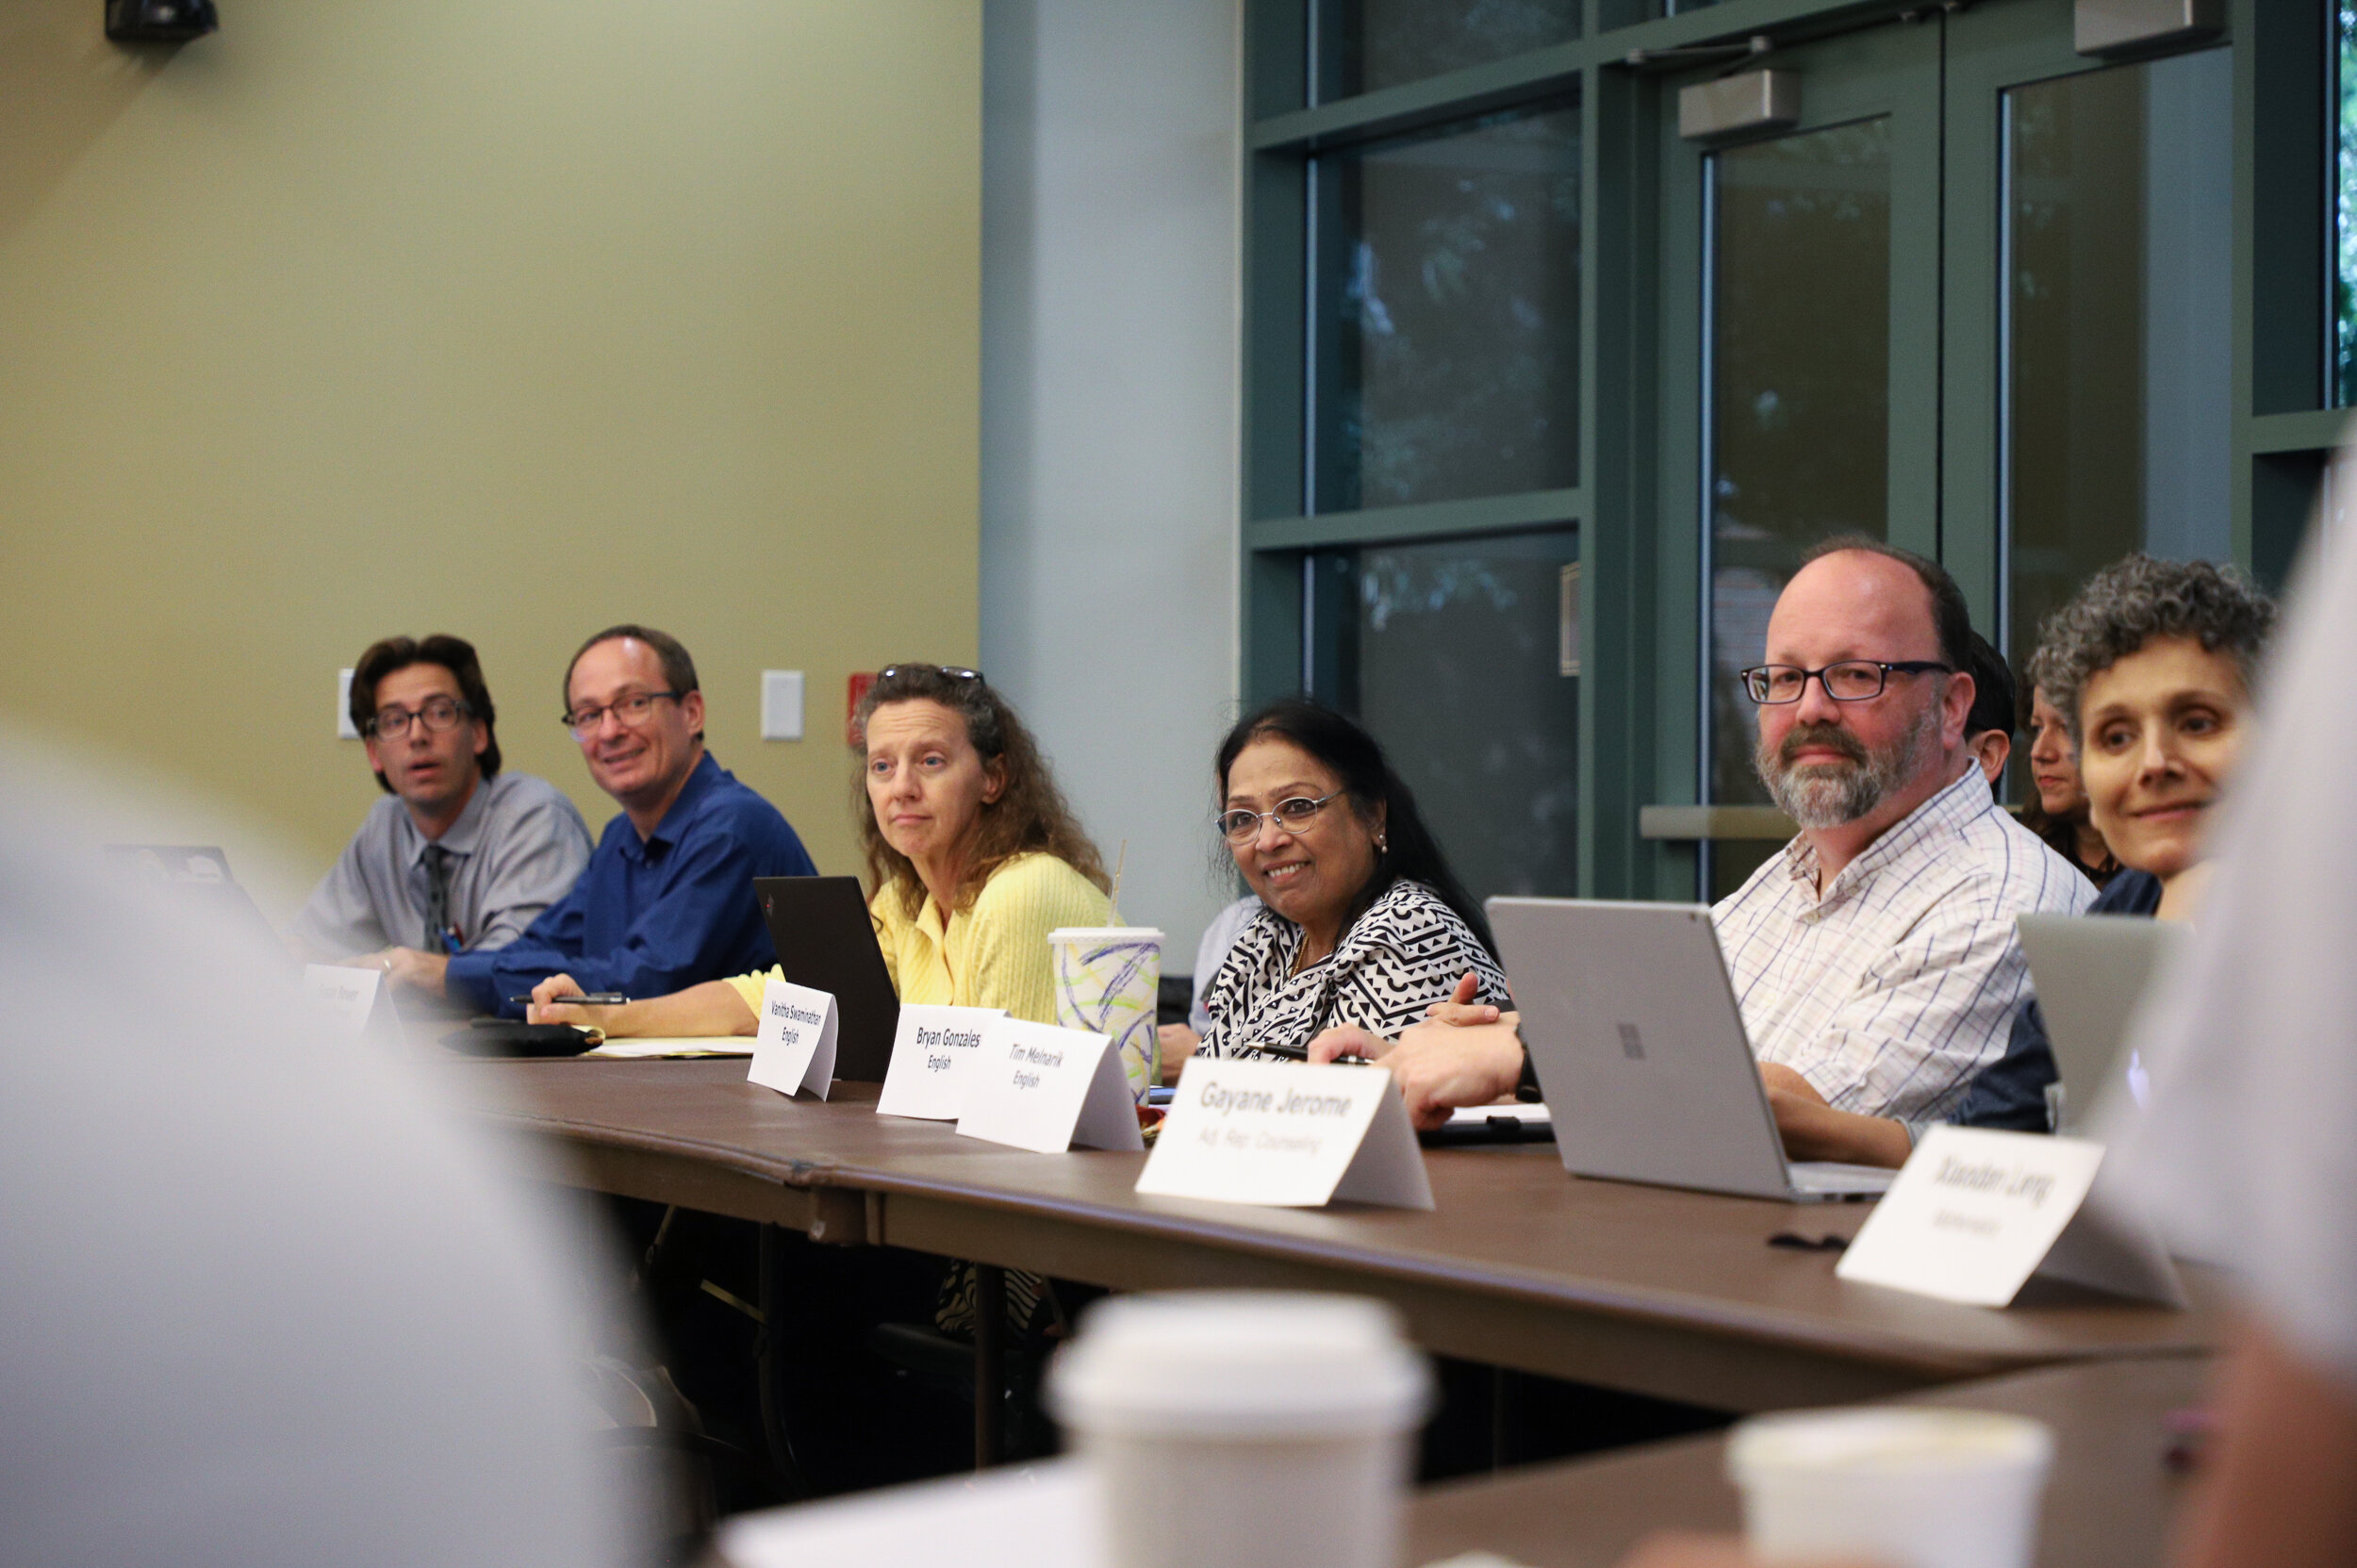 Nicholas Slobin/ Courier Faculty members during the Academic Senate Board Meeting at Pasadena City College on Monday, September 9, 2019.